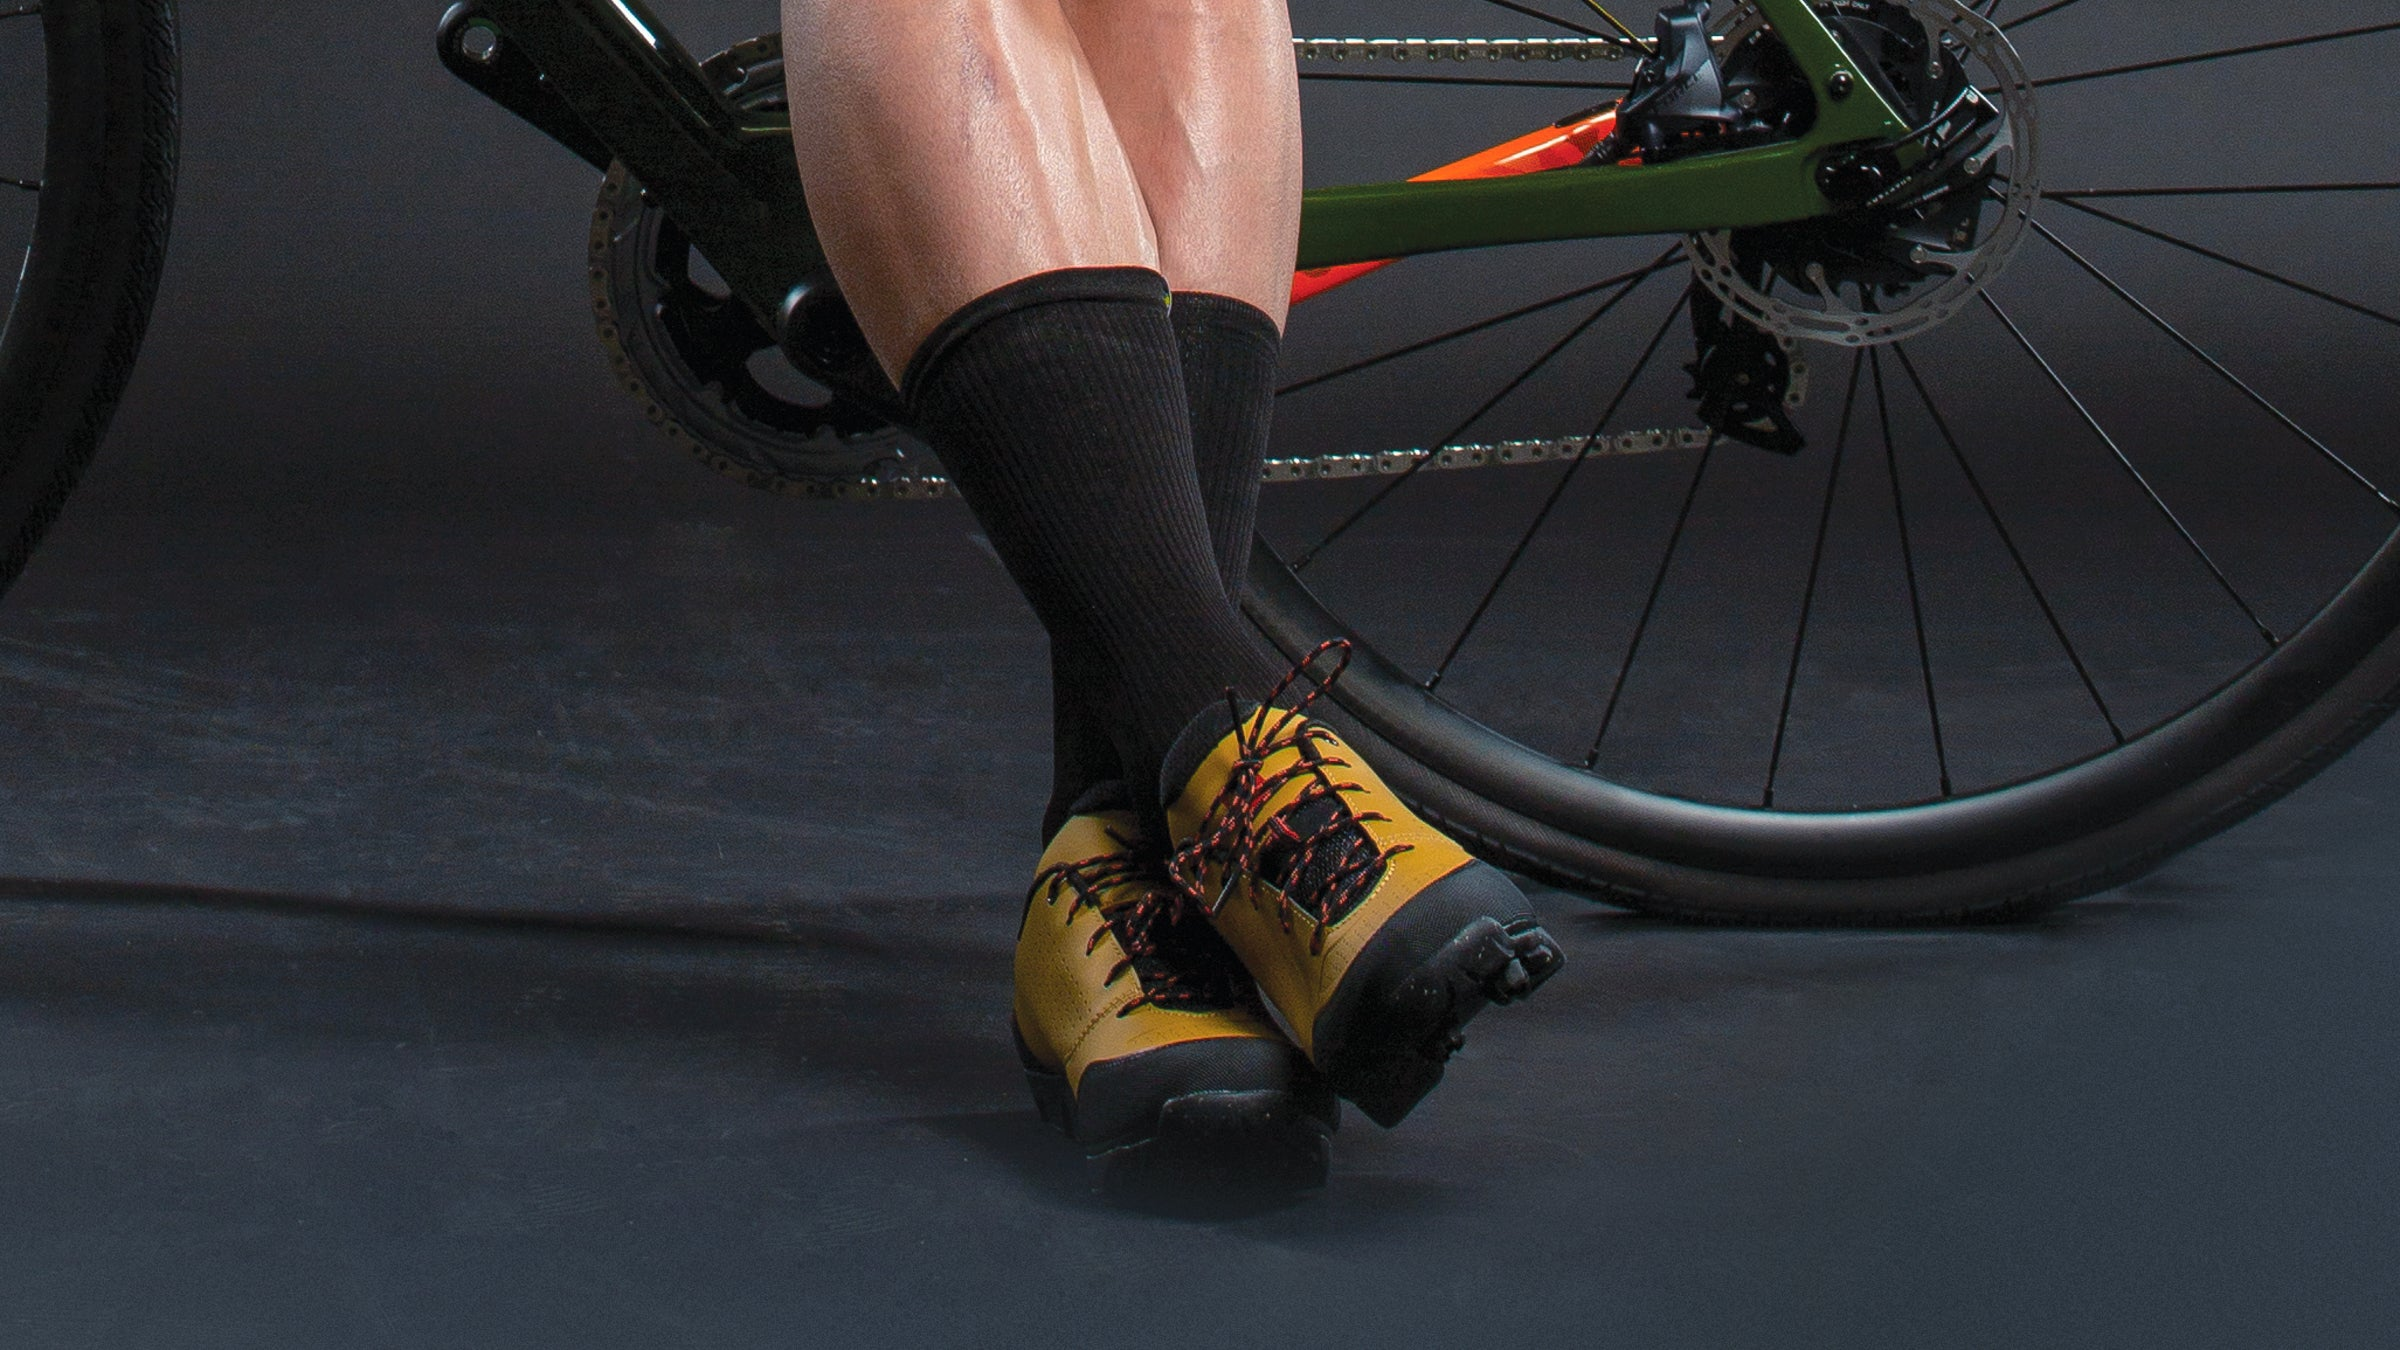 Close-up of gravel cycling shoes and socks.